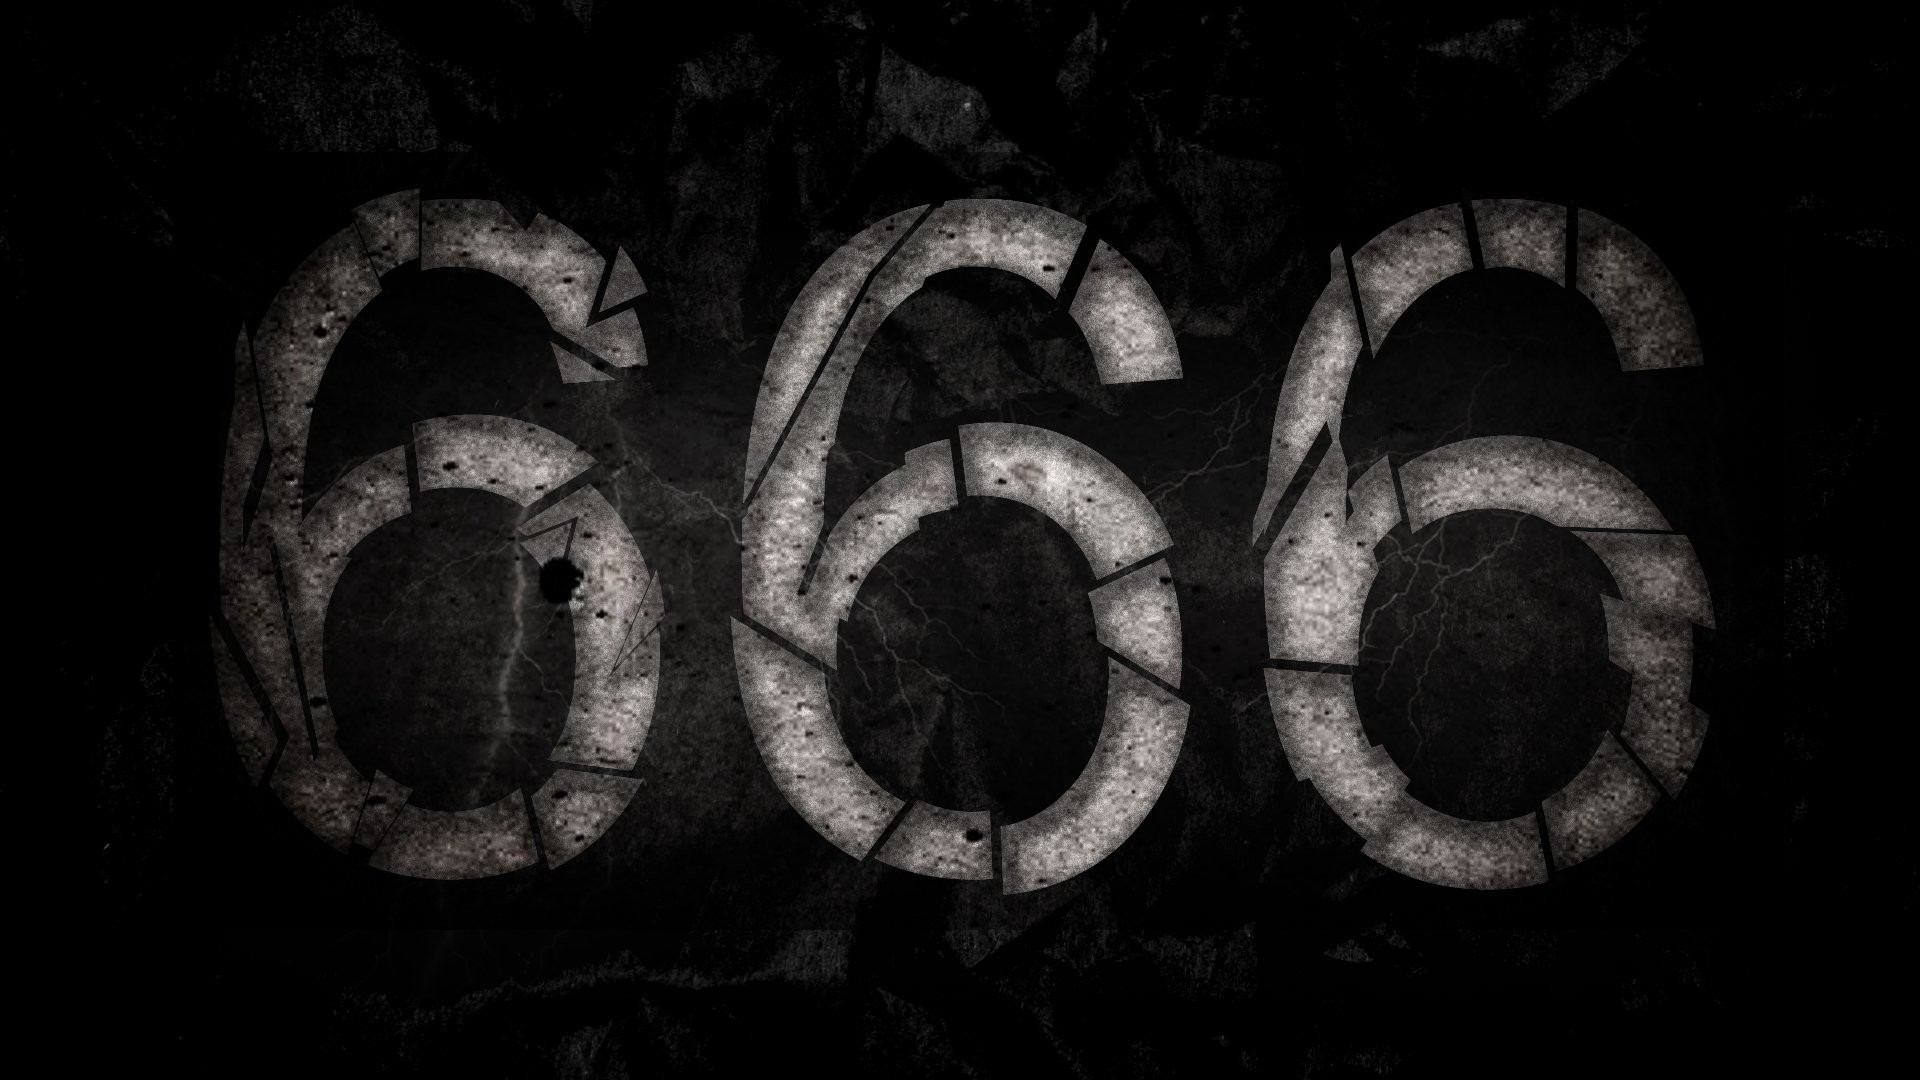 1920x1080 occult satan satanic 666 evil wallpaper